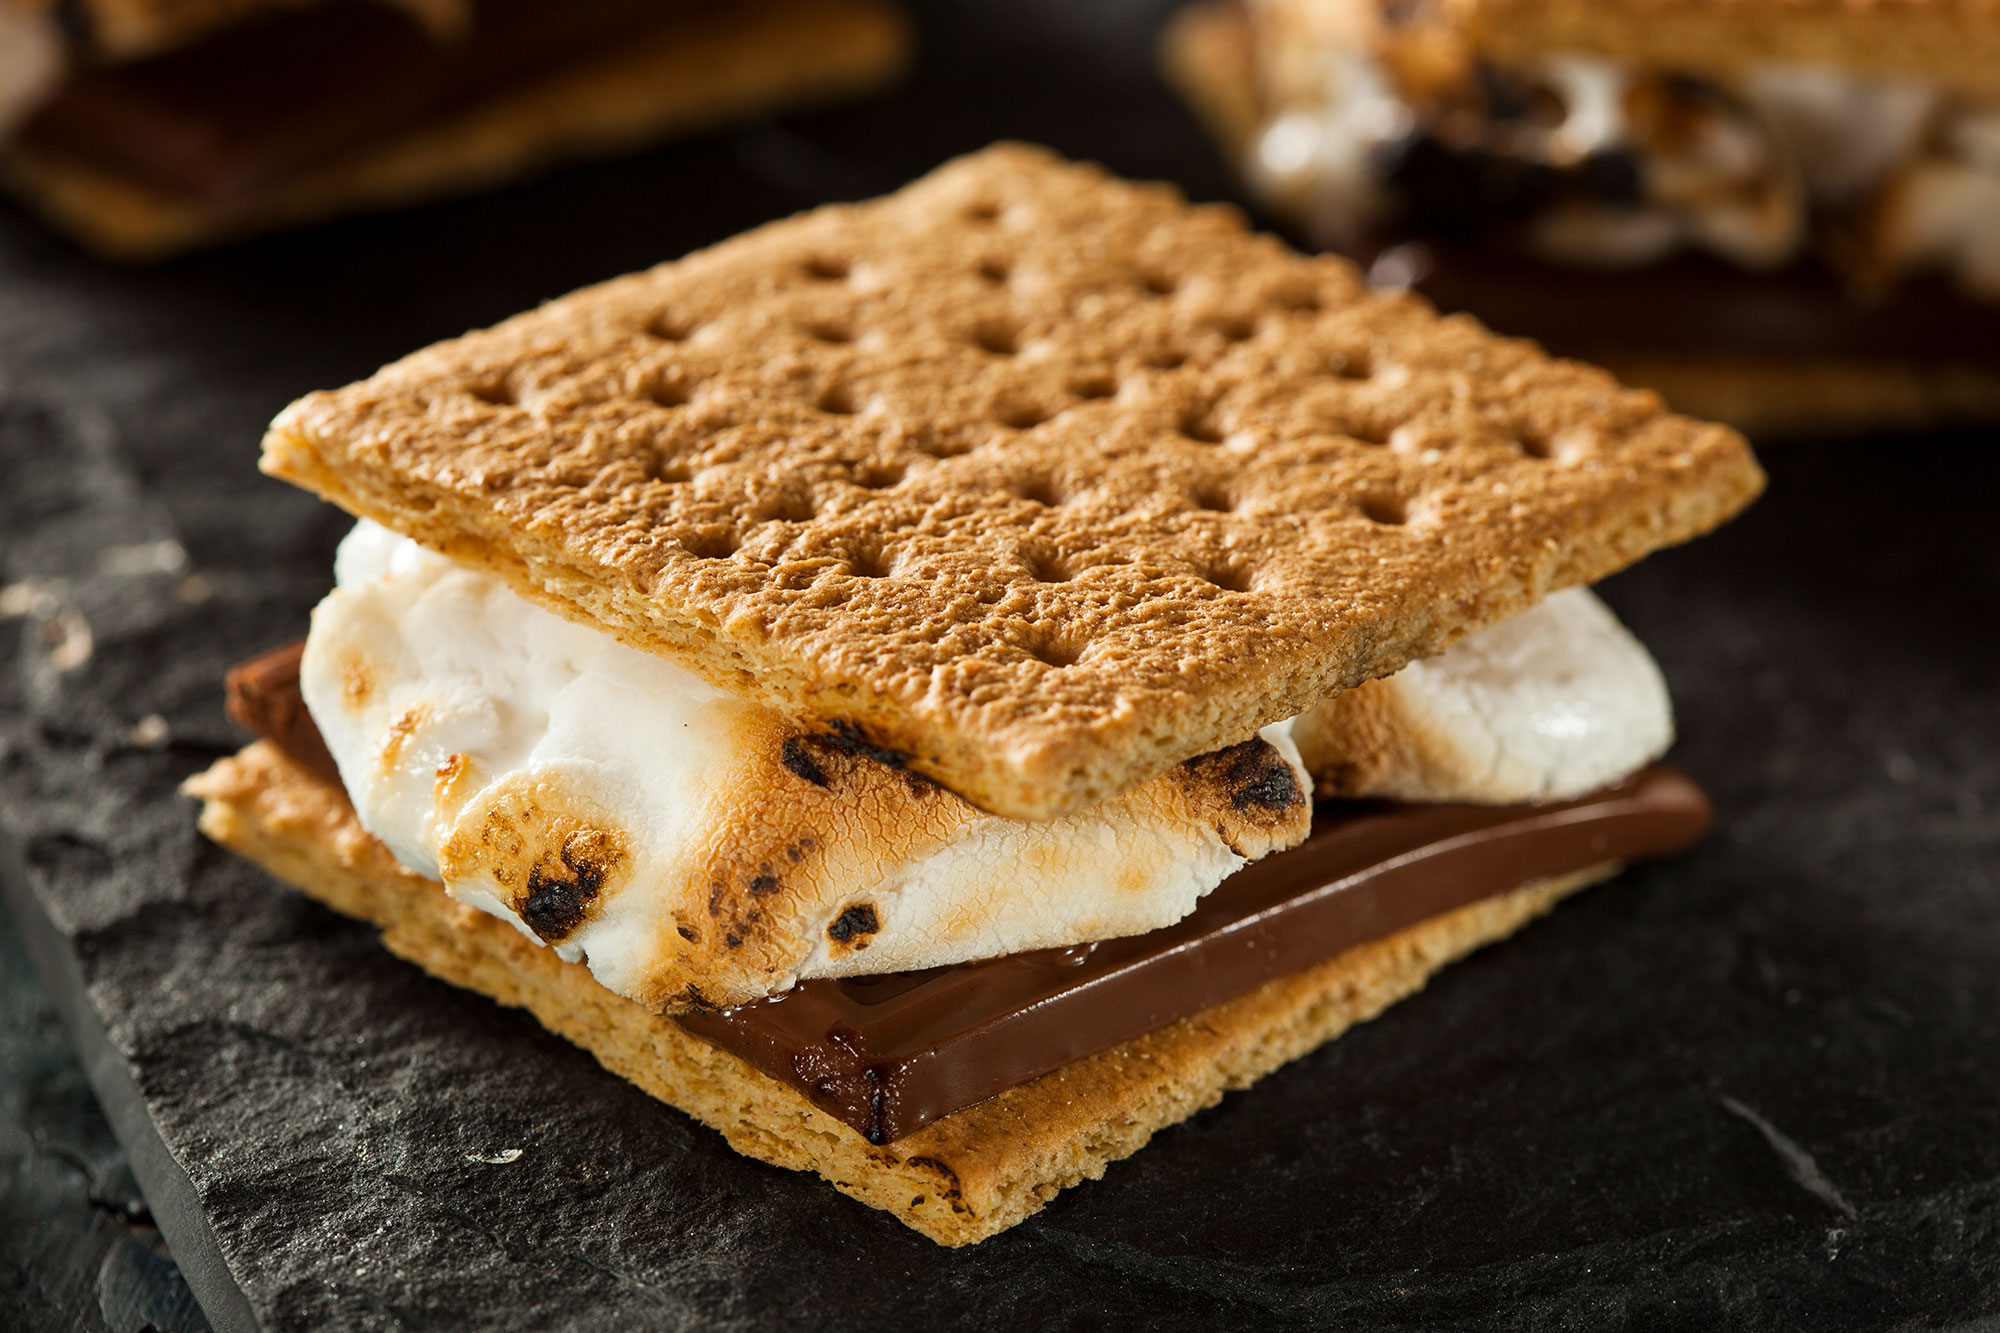 S'more with burnt marshmallow and melted chocolate